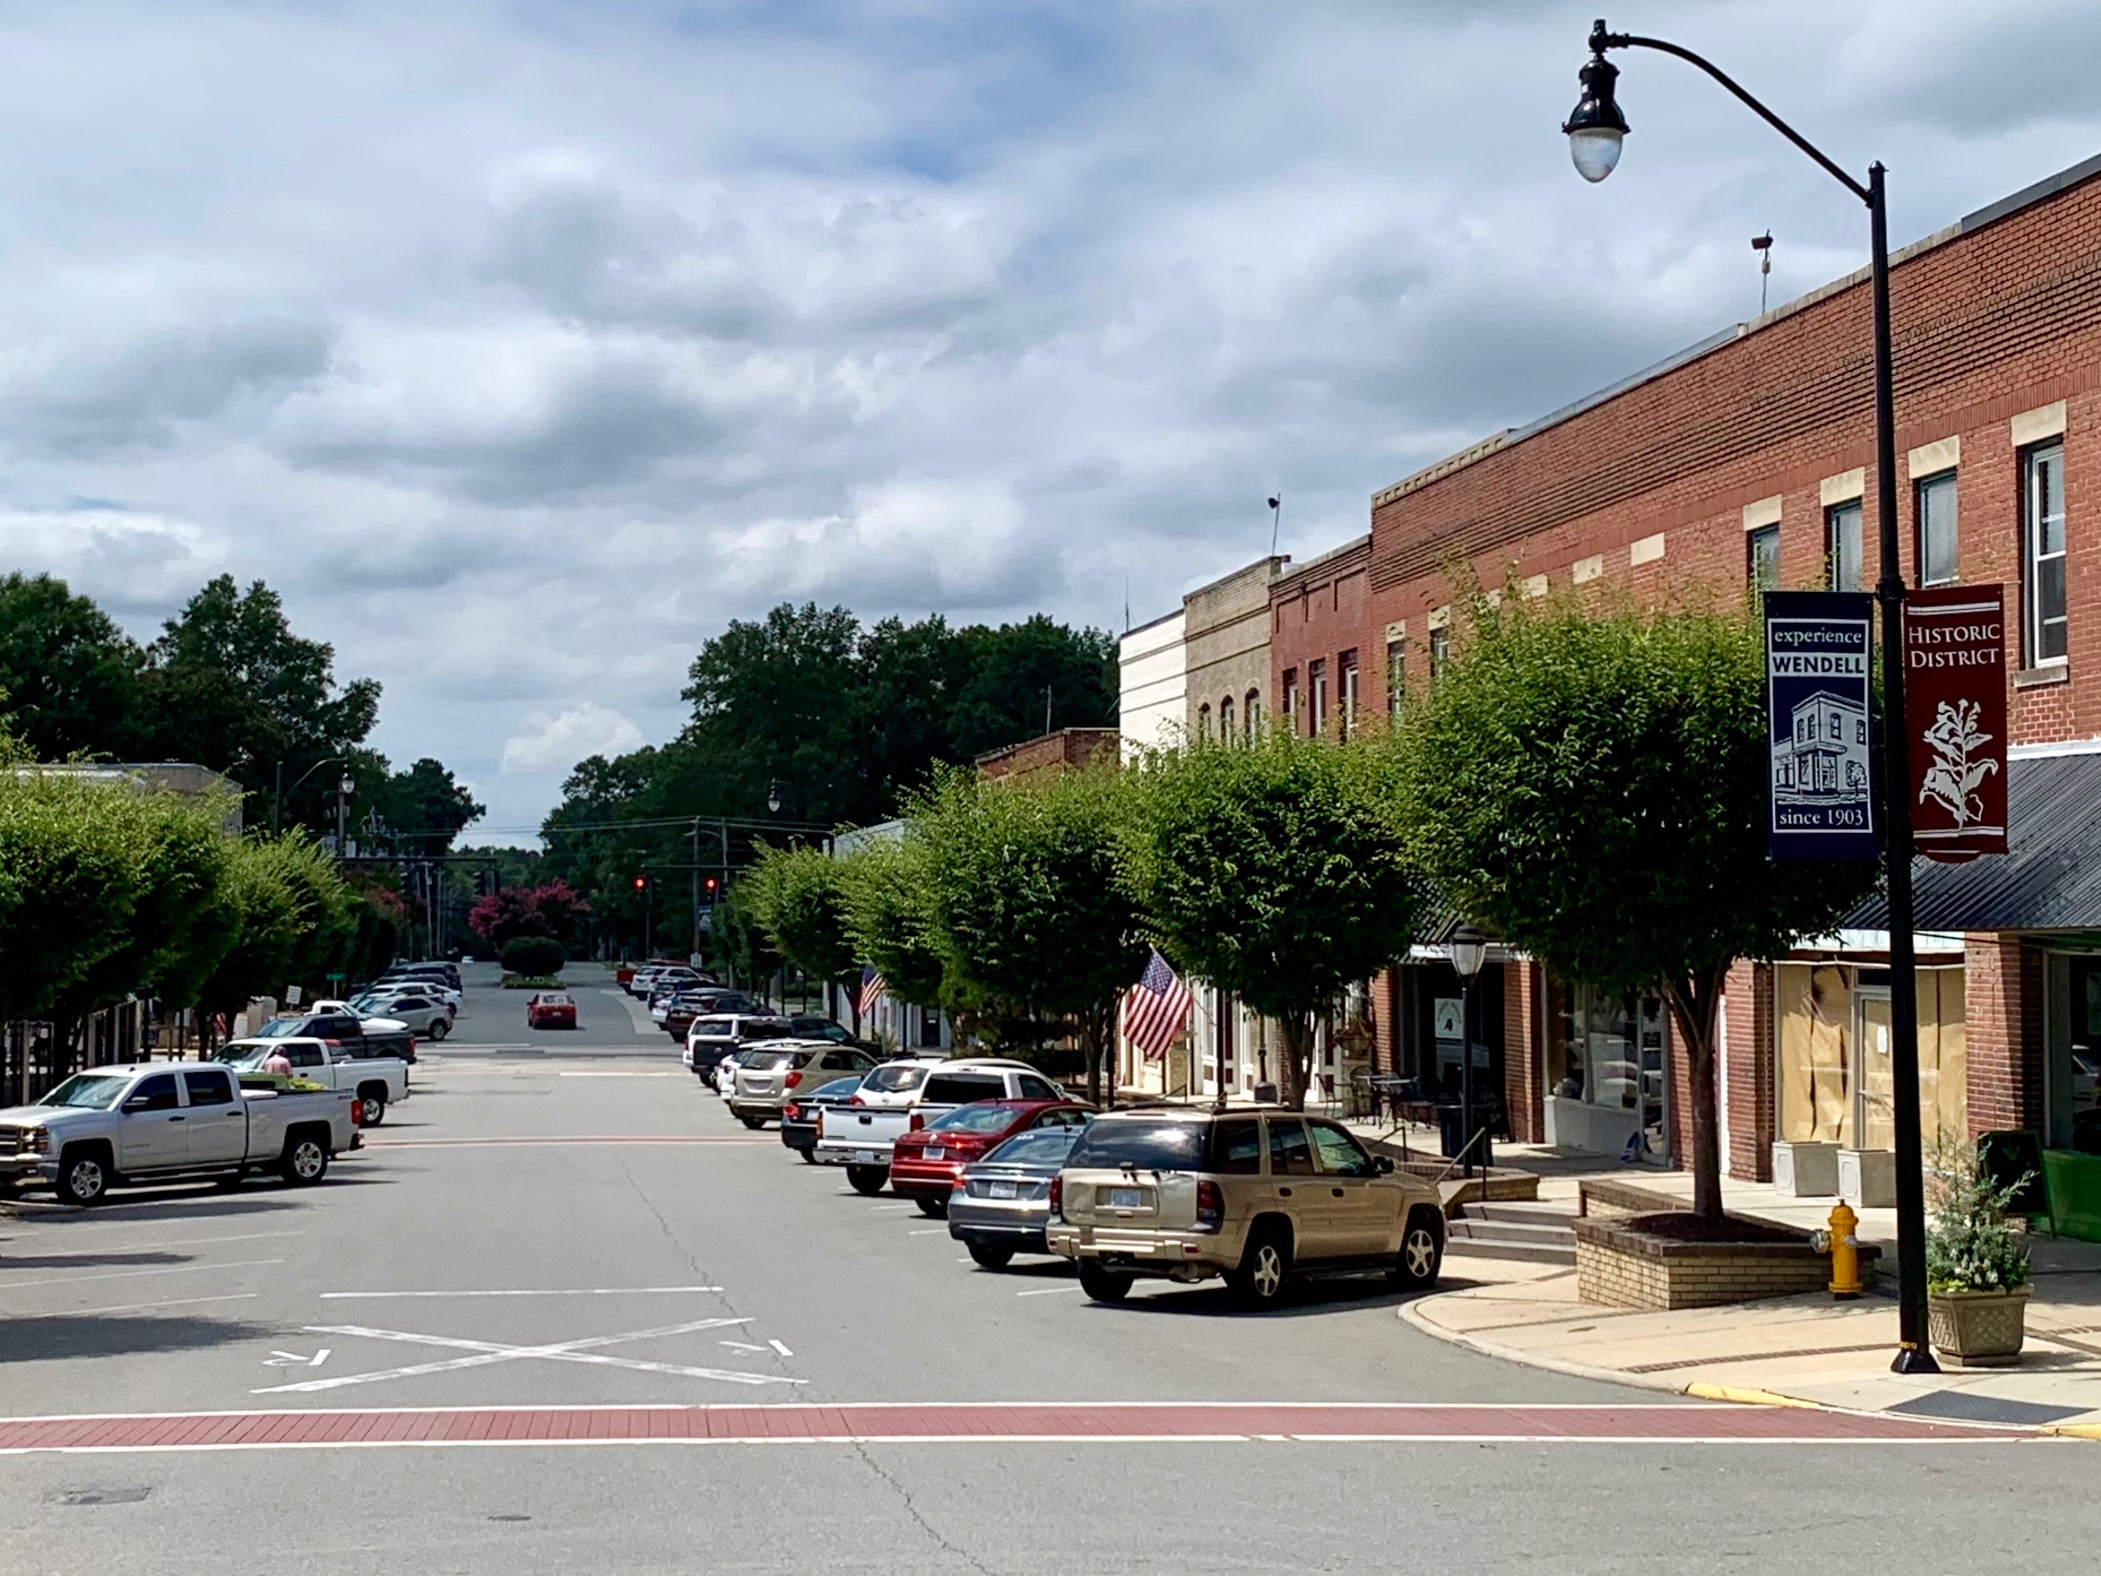 Downtown Wendell